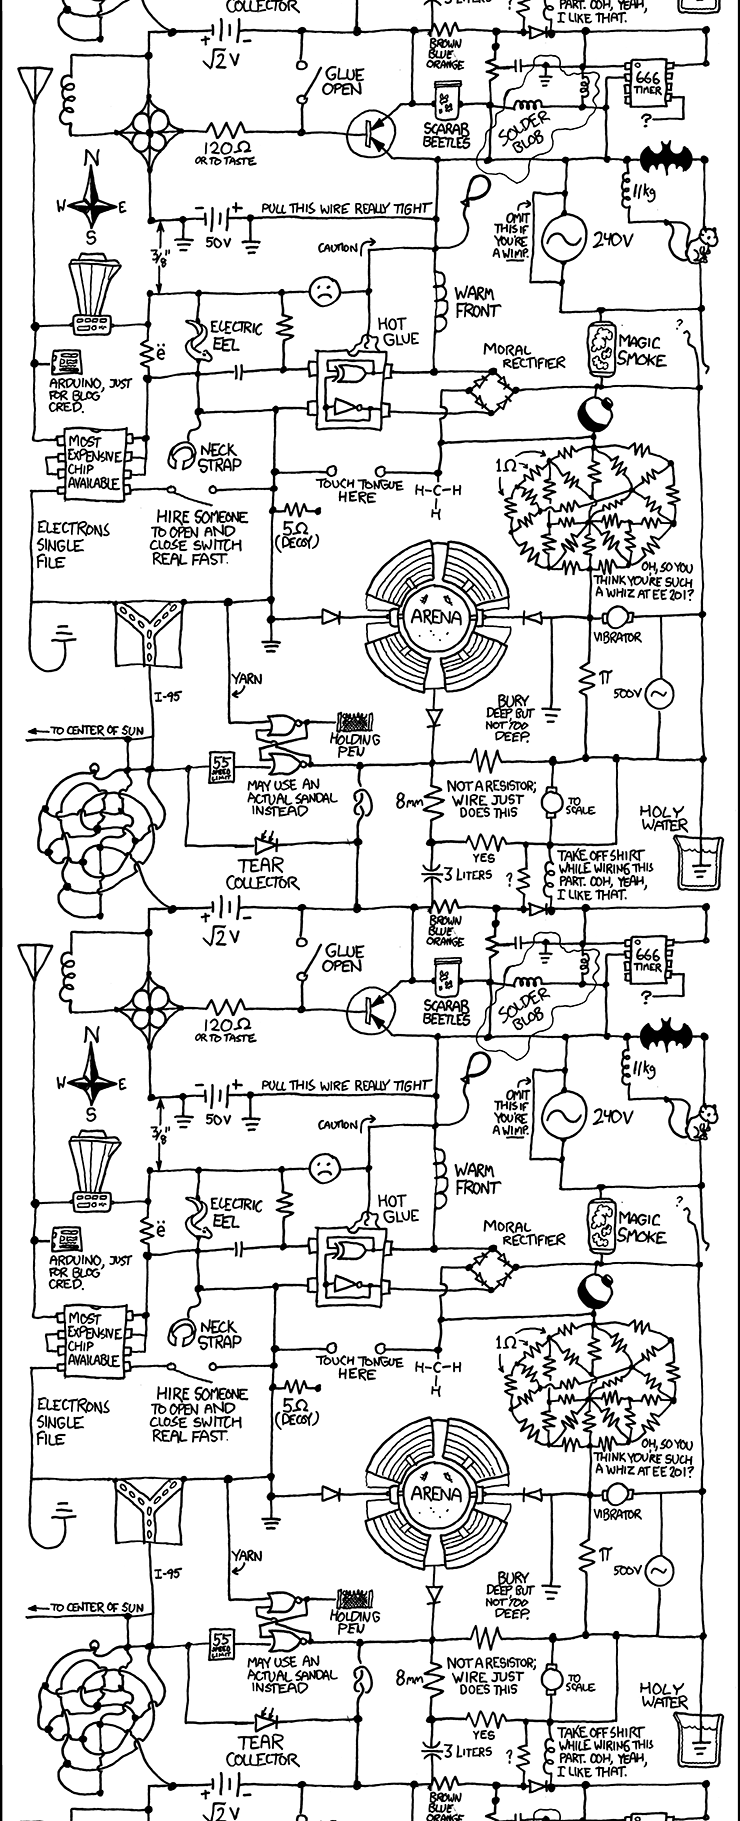 circuit diagram, by you, sir, name? - making xkcd slightly worse, Wiring circuit